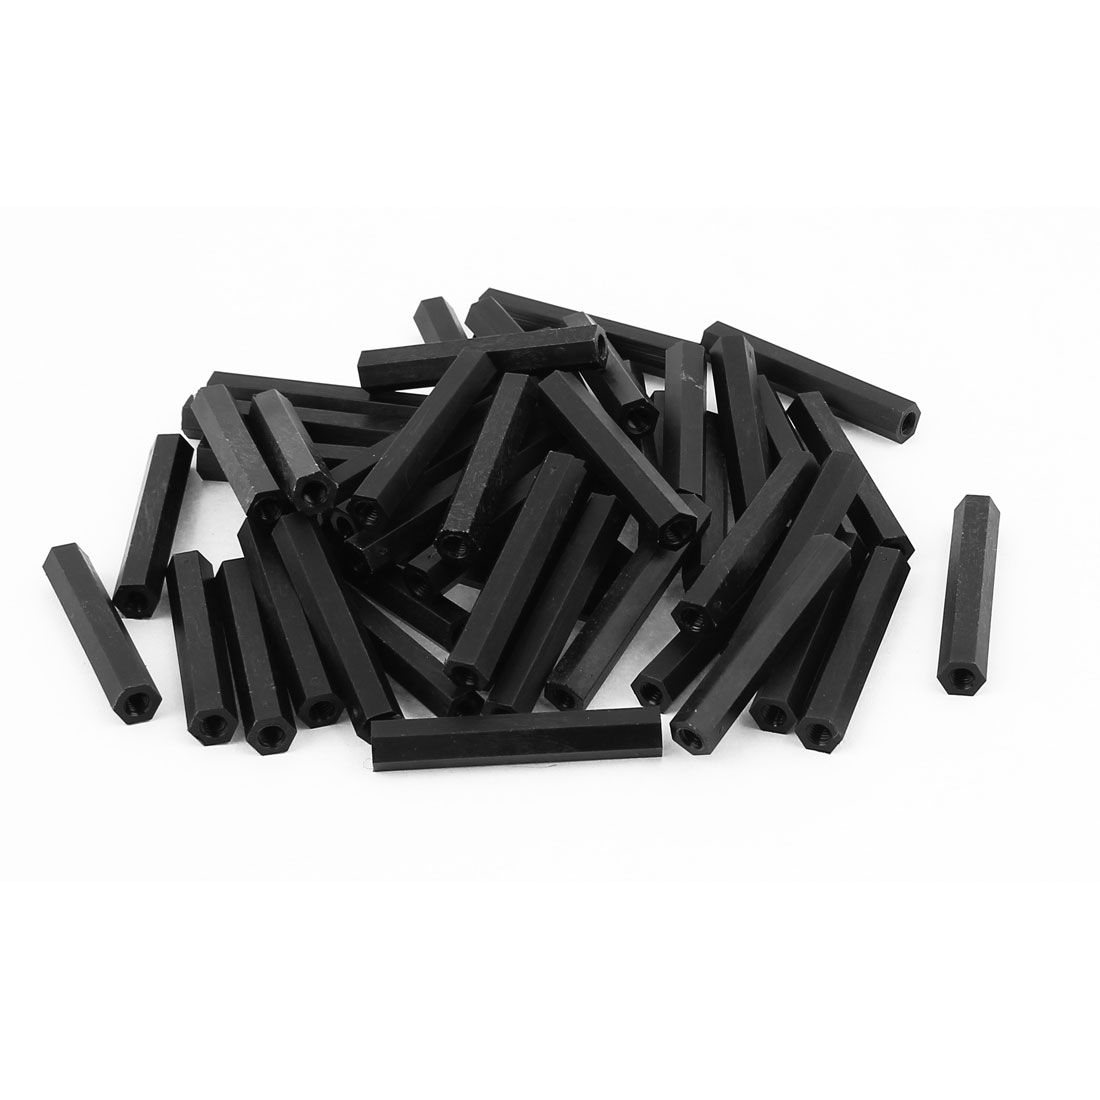 50Pcs M4x45mm Nylon Hex PCB Spacer Standoff Pillar Female Screw Nut Black